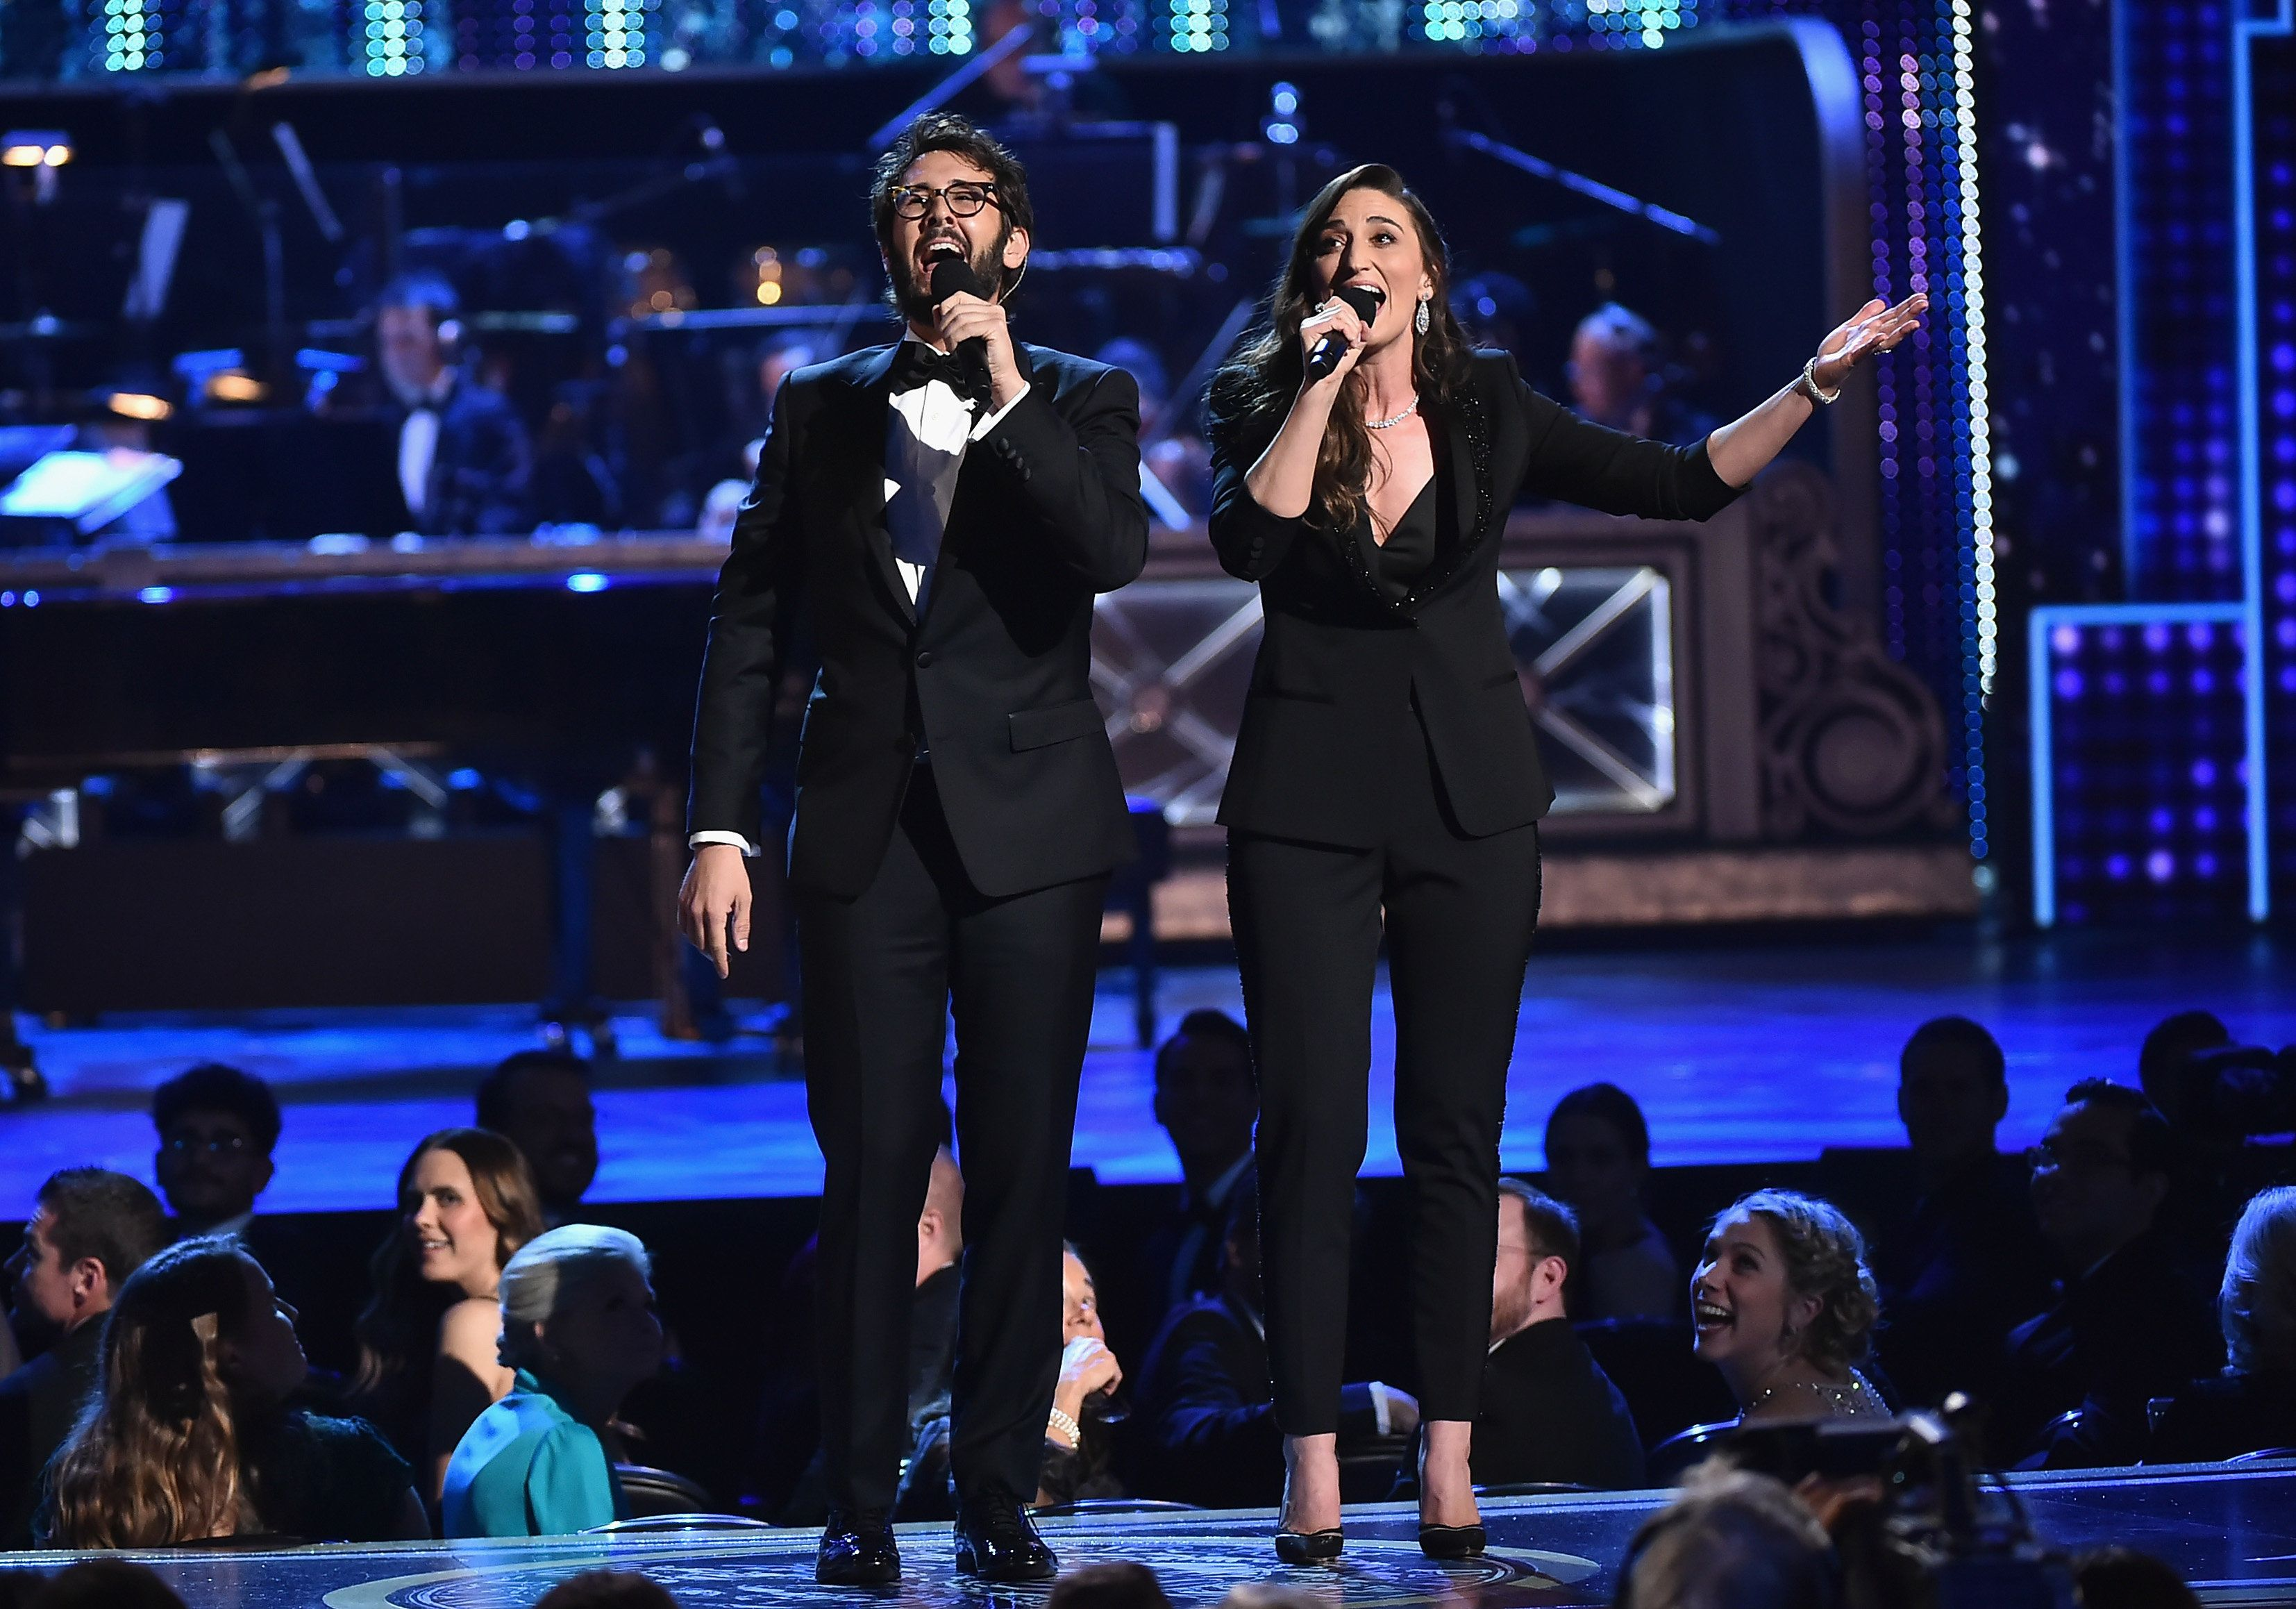 NEW YORK, NY - JUNE 10:  Josh Groban and Sara Bareilles perform onstage during the 72nd Annual Tony Awards at Radio City Music Hall on June 10, 2018 in New York City.  (Photo by Theo Wargo/Getty Images for Tony Awards Productions)